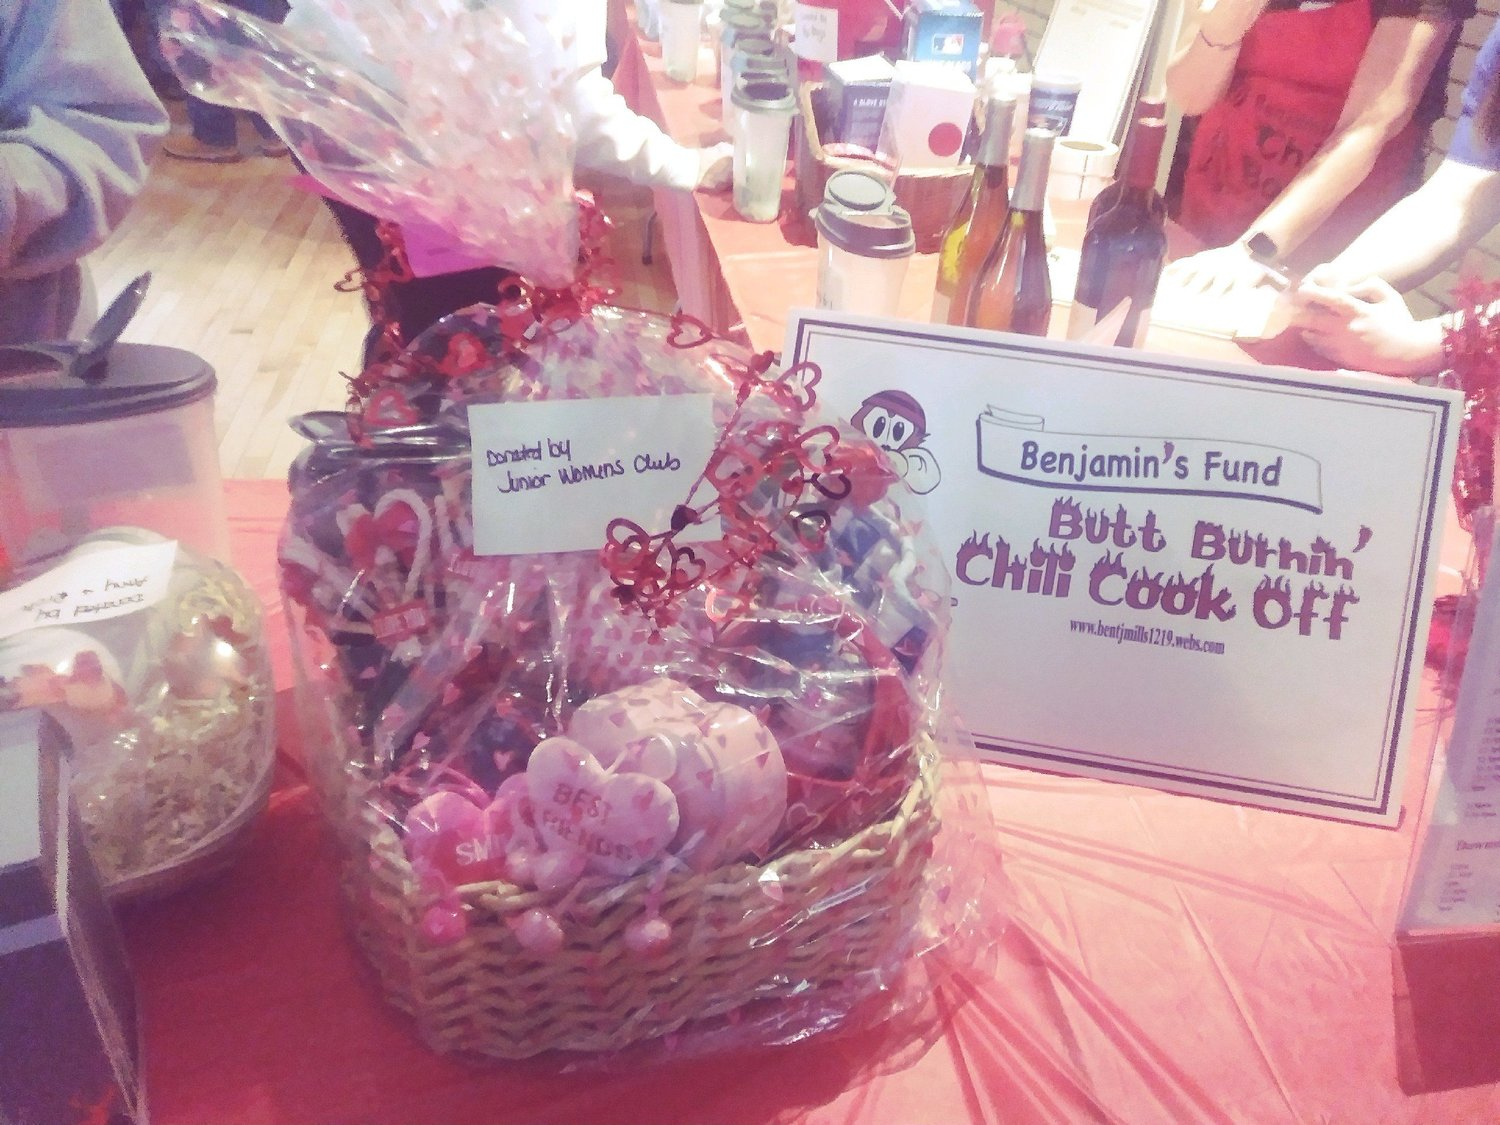 The GFWC Taunton and Raynham Junior Woman's Club is lending support to other organizations by donating gift baskets to raffle off for their specific causes.